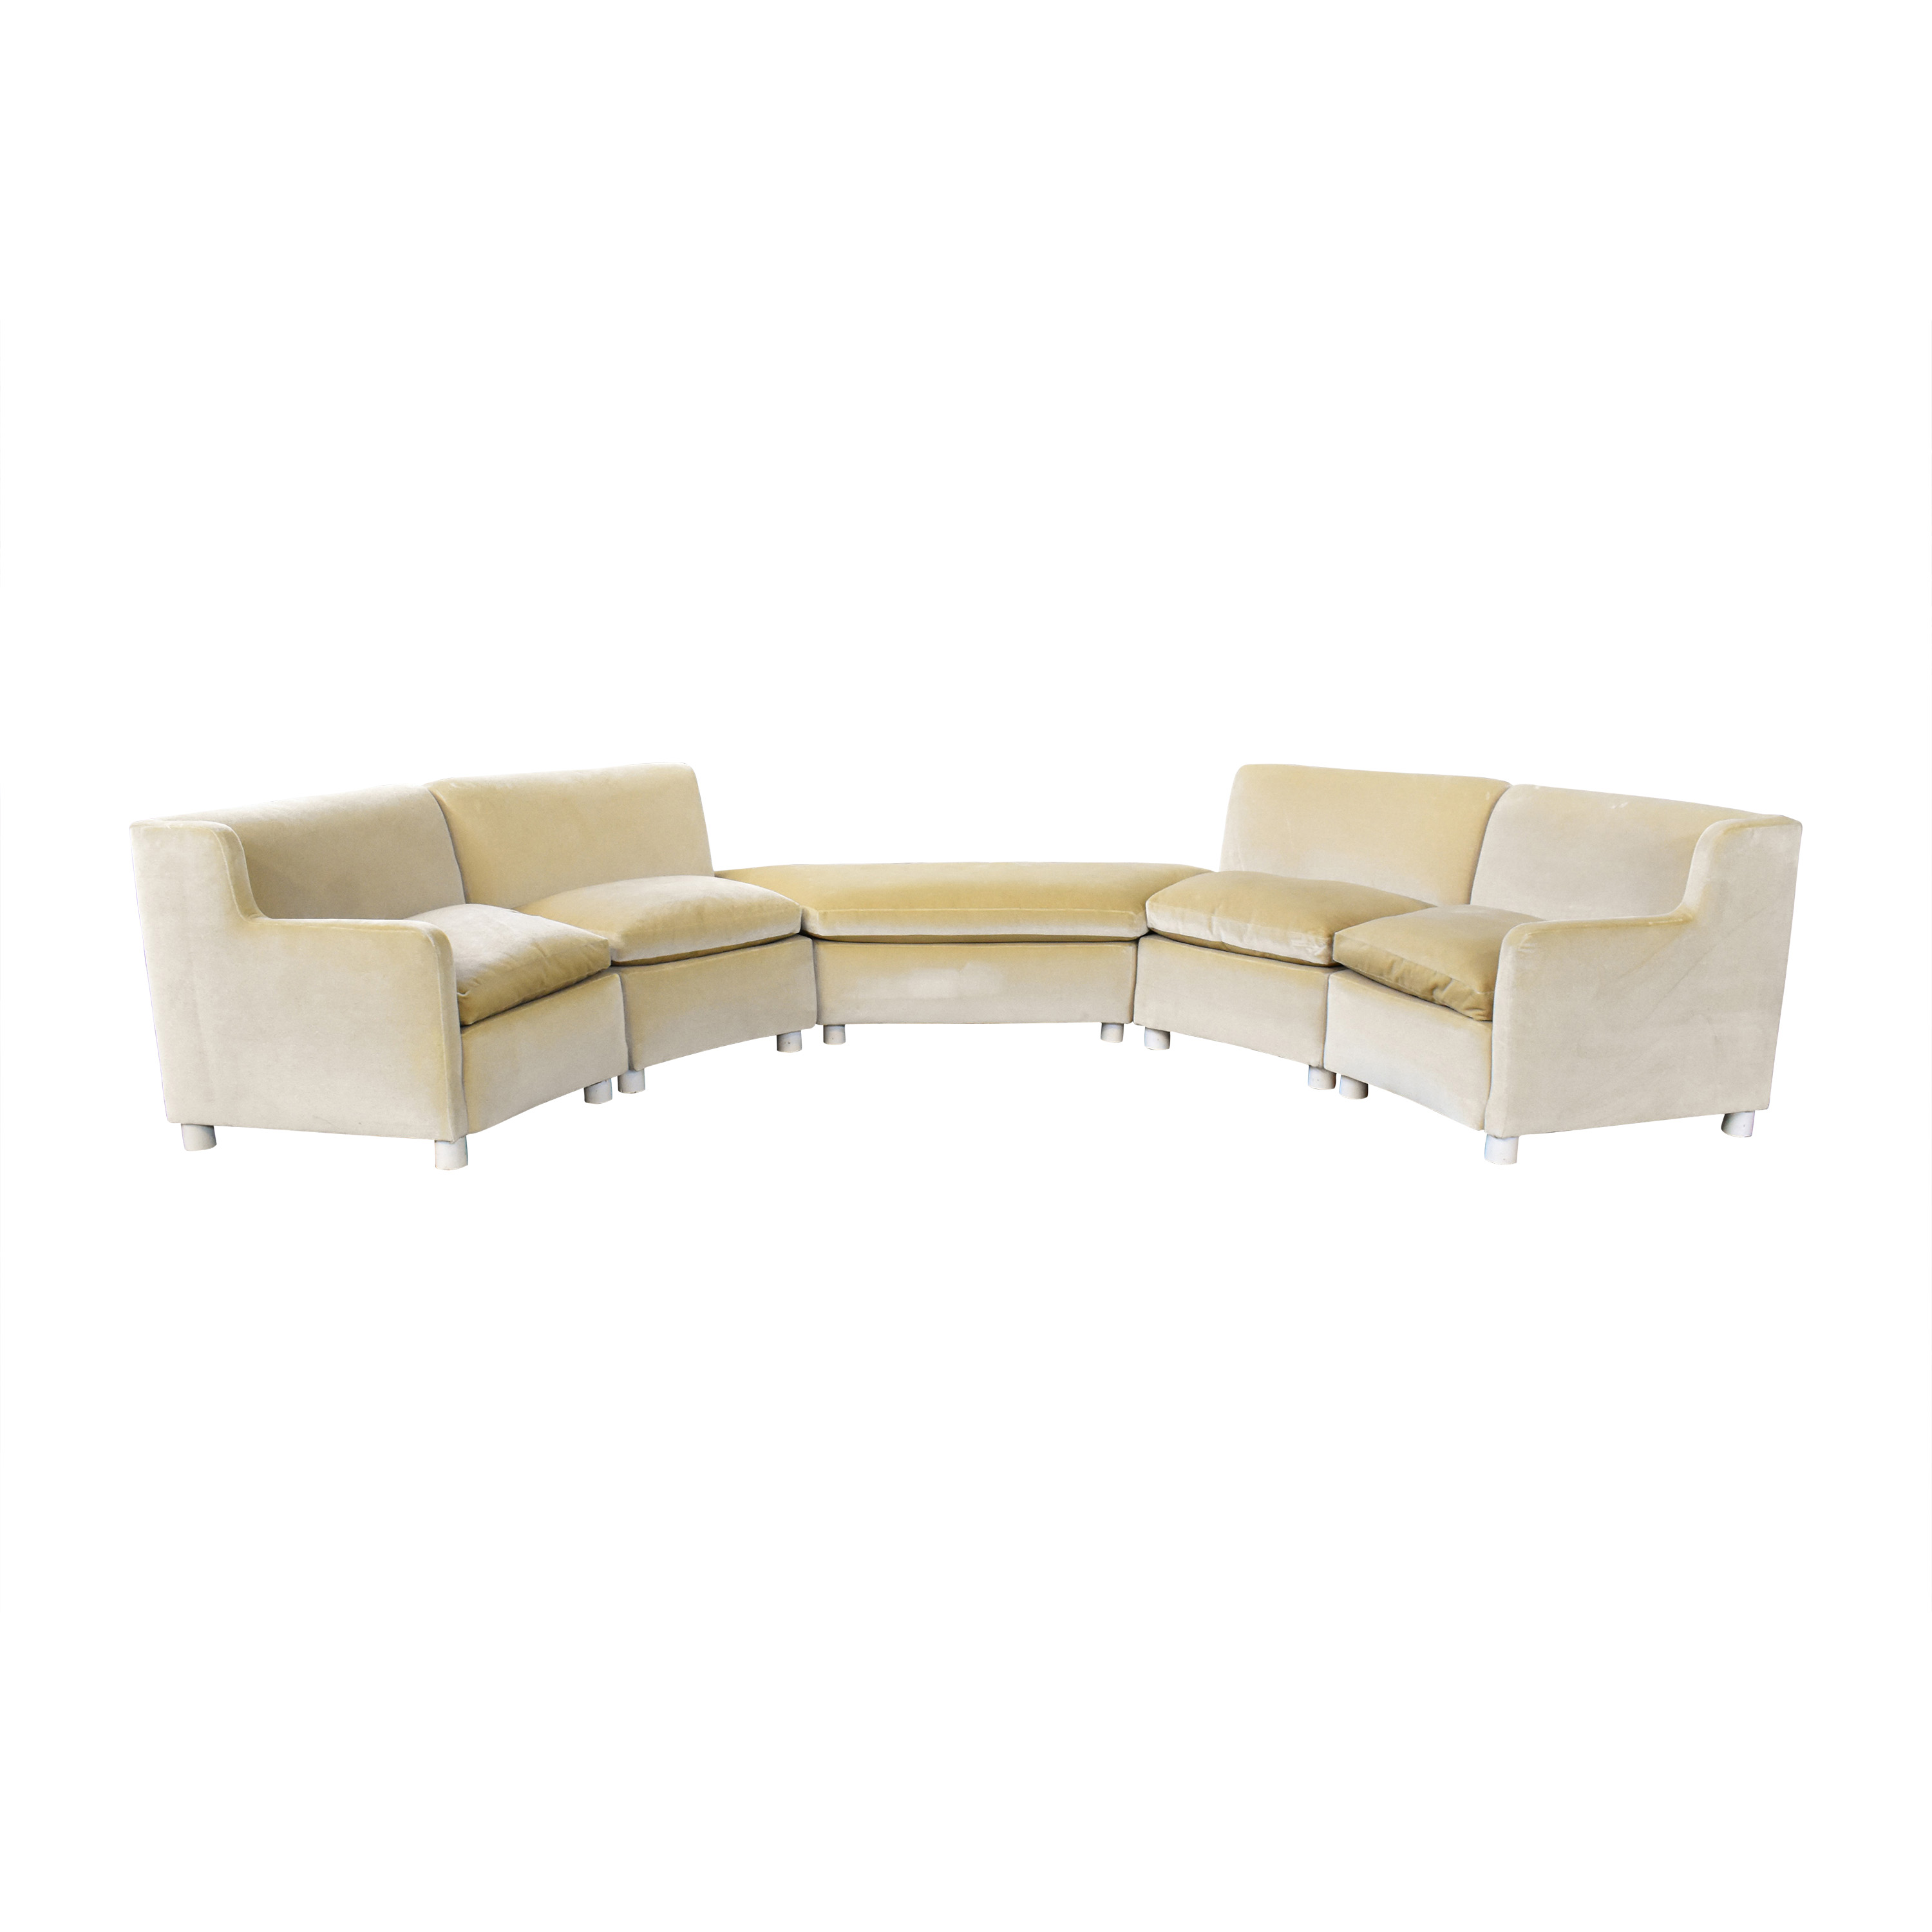 Curved Art Deco Sectional with Ottomans